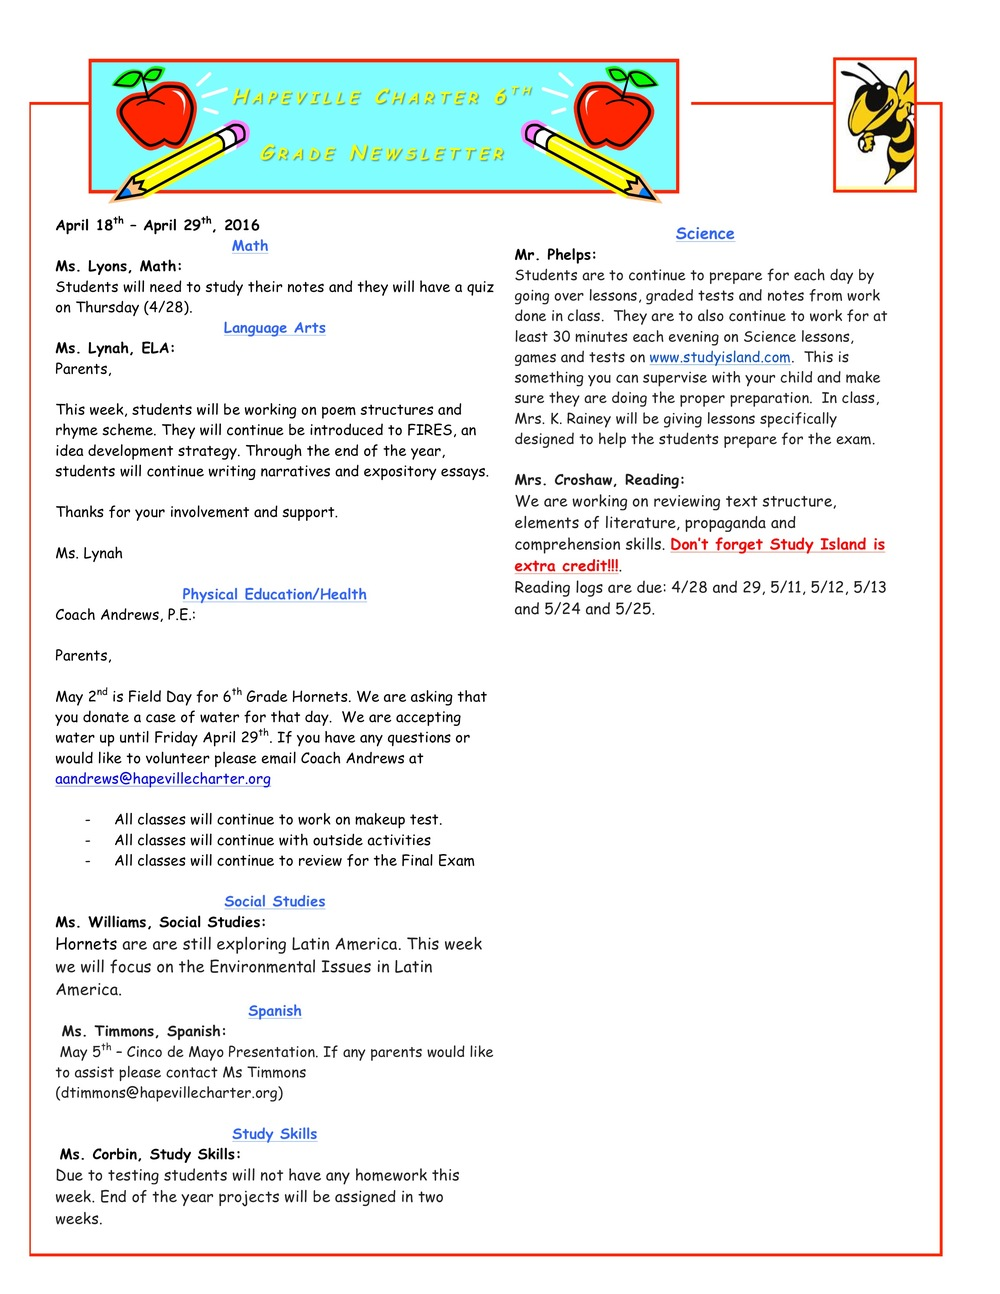 Newsletter Image6th Grade Newsletter 4-25.jpeg